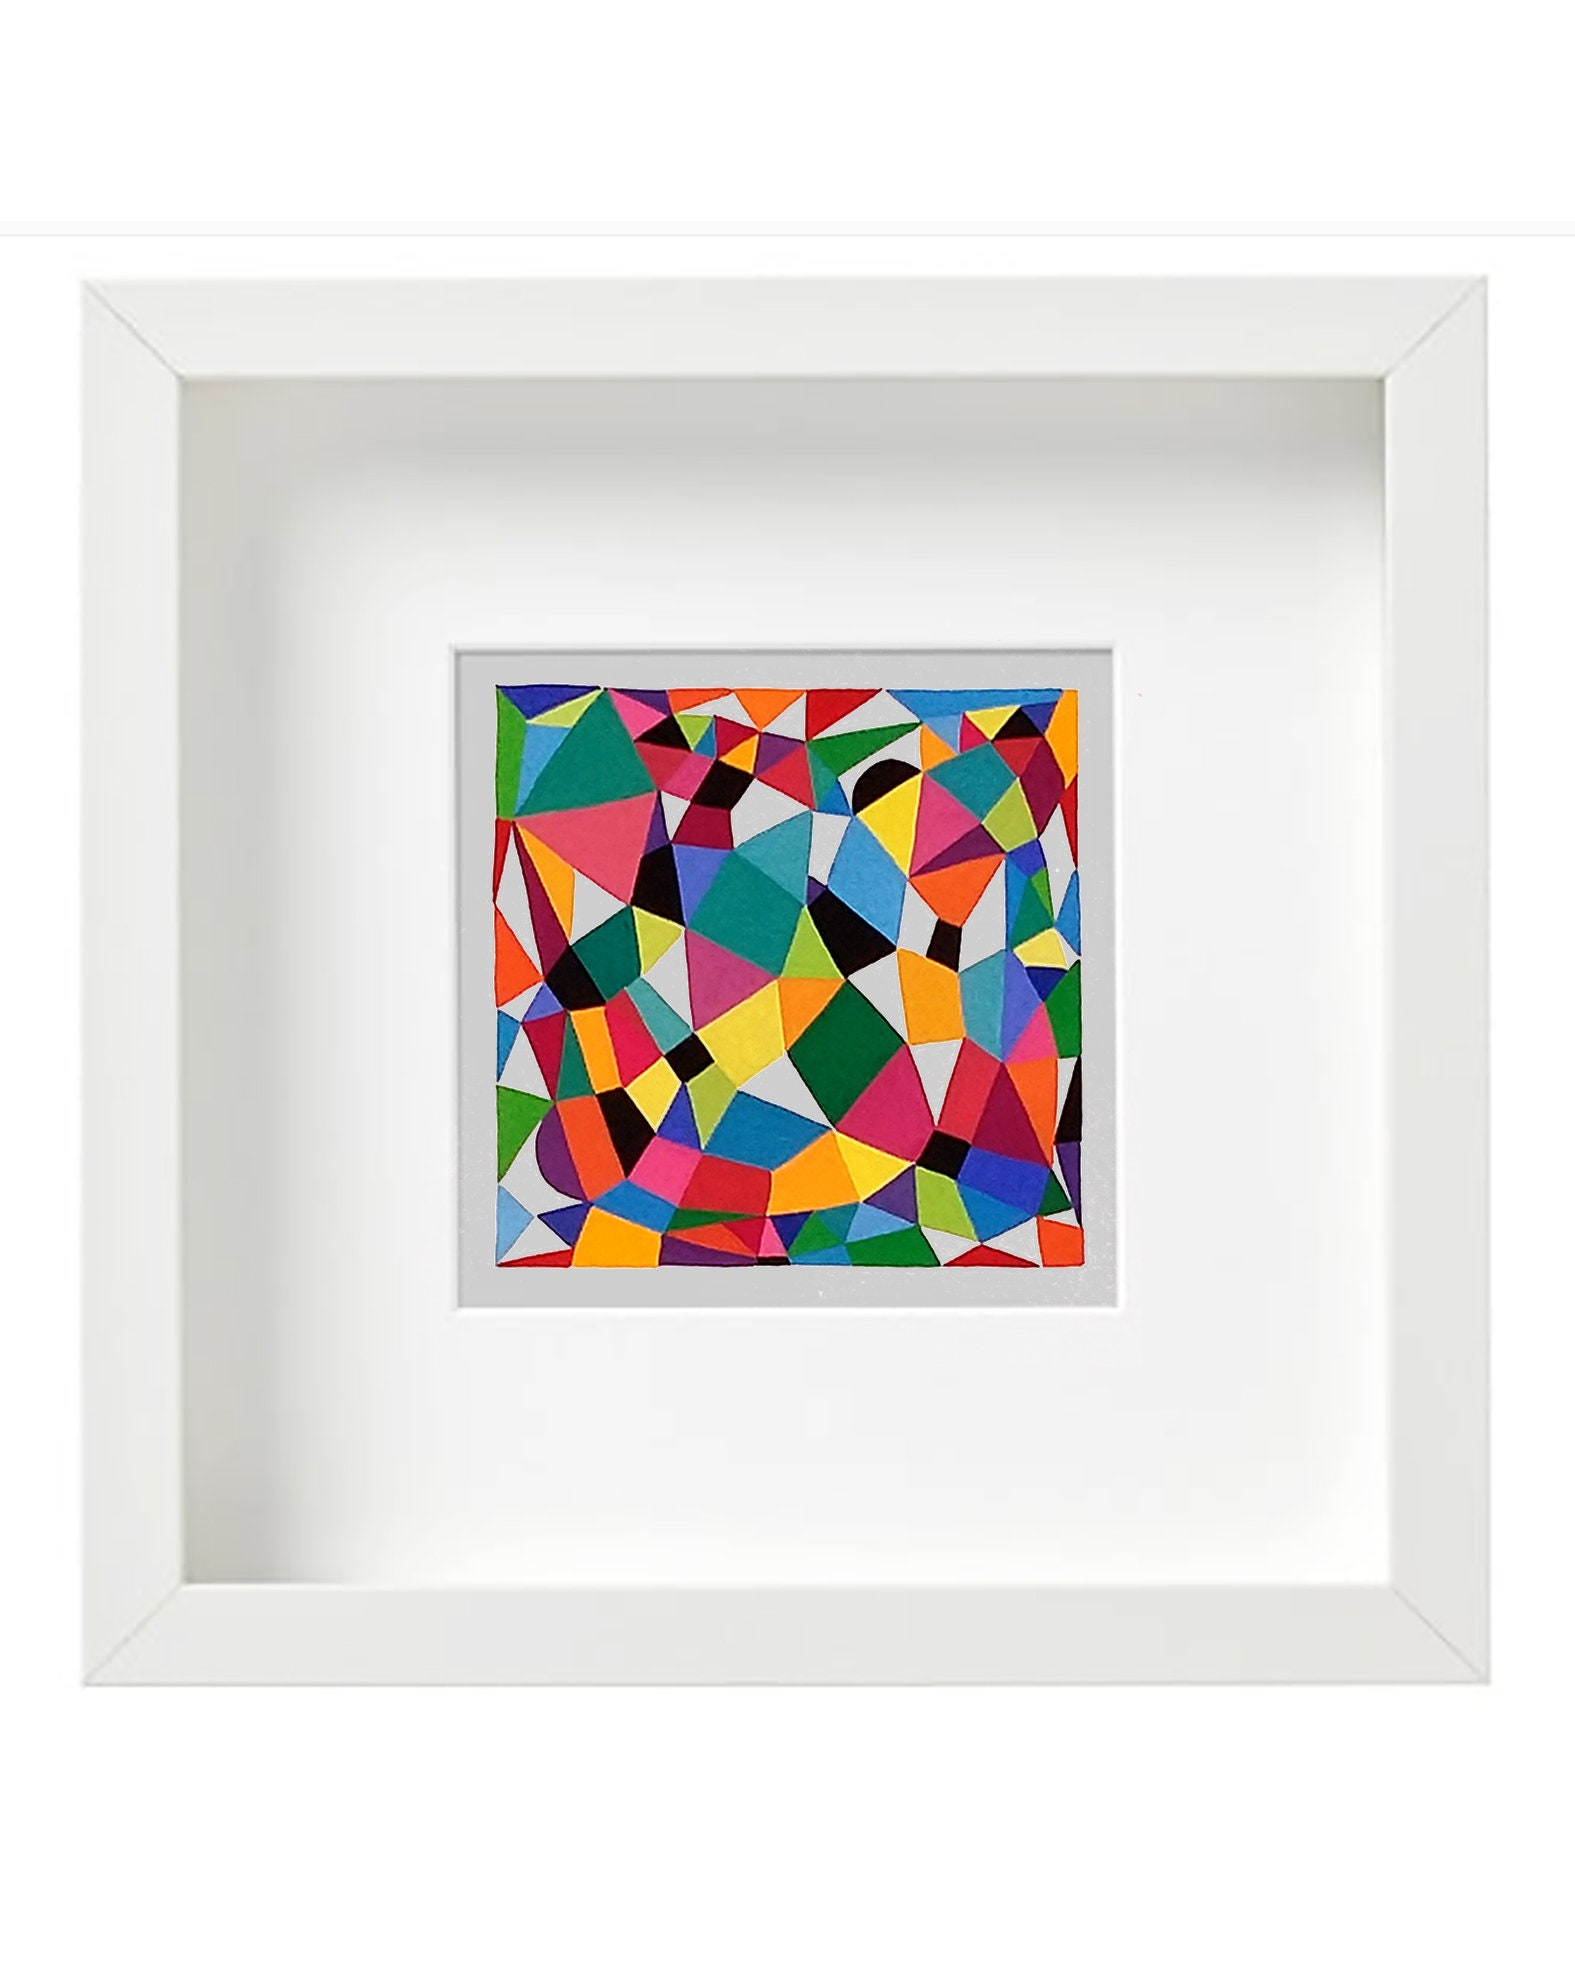 Grid_001, small geometric illustration - product images  of